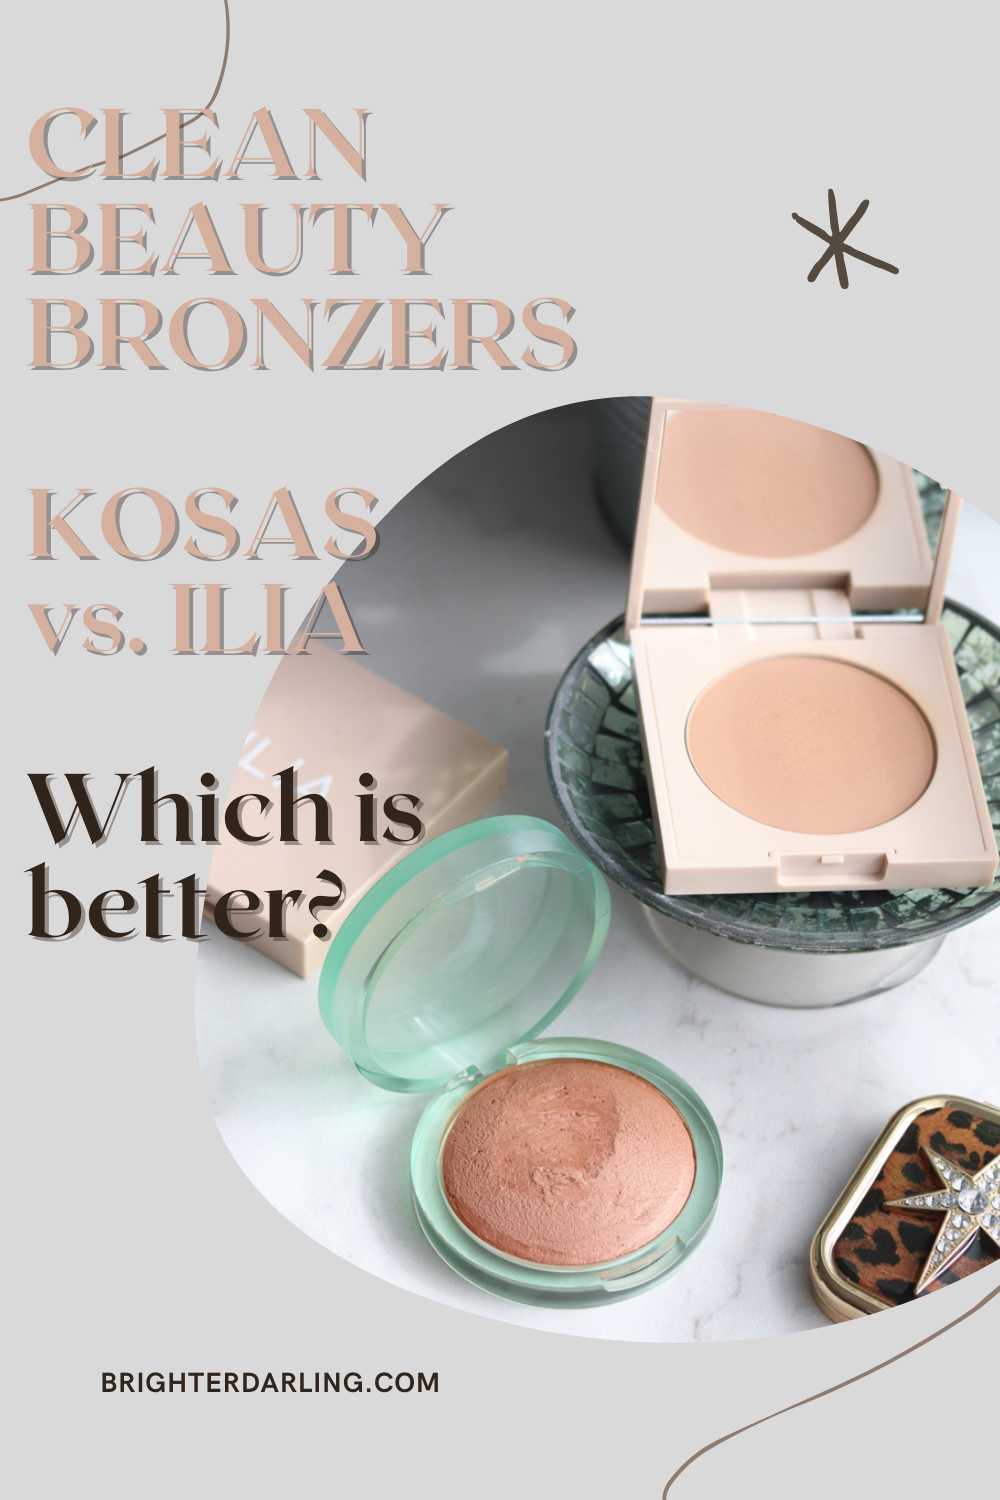 CLEAN BEAUTY BRONZERS KOSAS vs. ILIA Which is better? | KOSAS The Sun Show Bronzer Swatches, ILIA Nightlite Bronzer Drawn In, Novelty Swatches